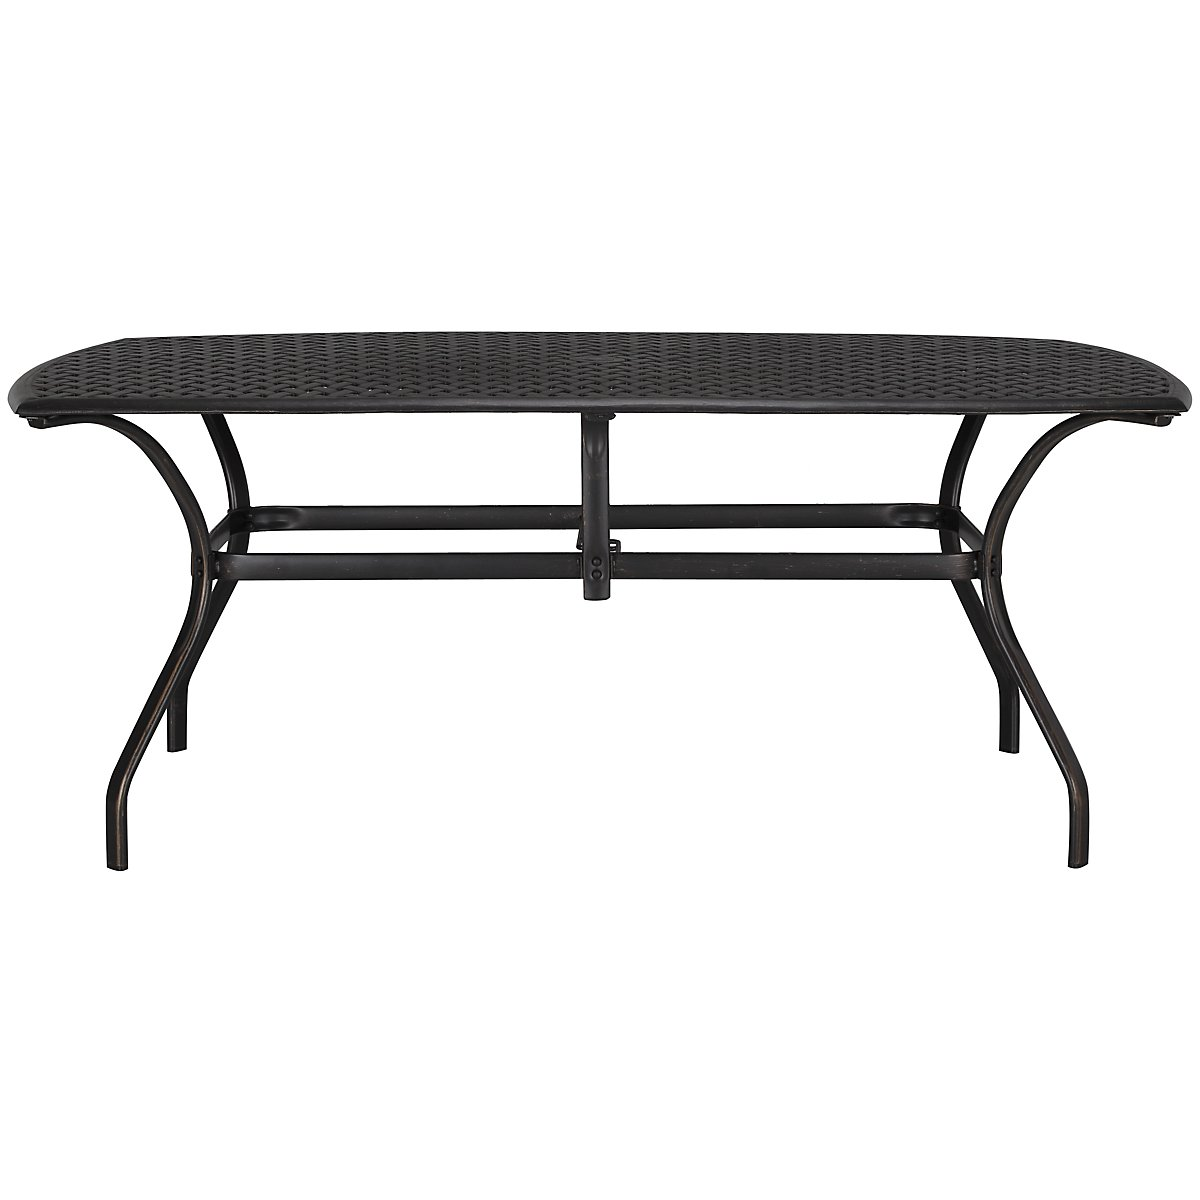 "Bella 72"" Steel Rectangular Table"